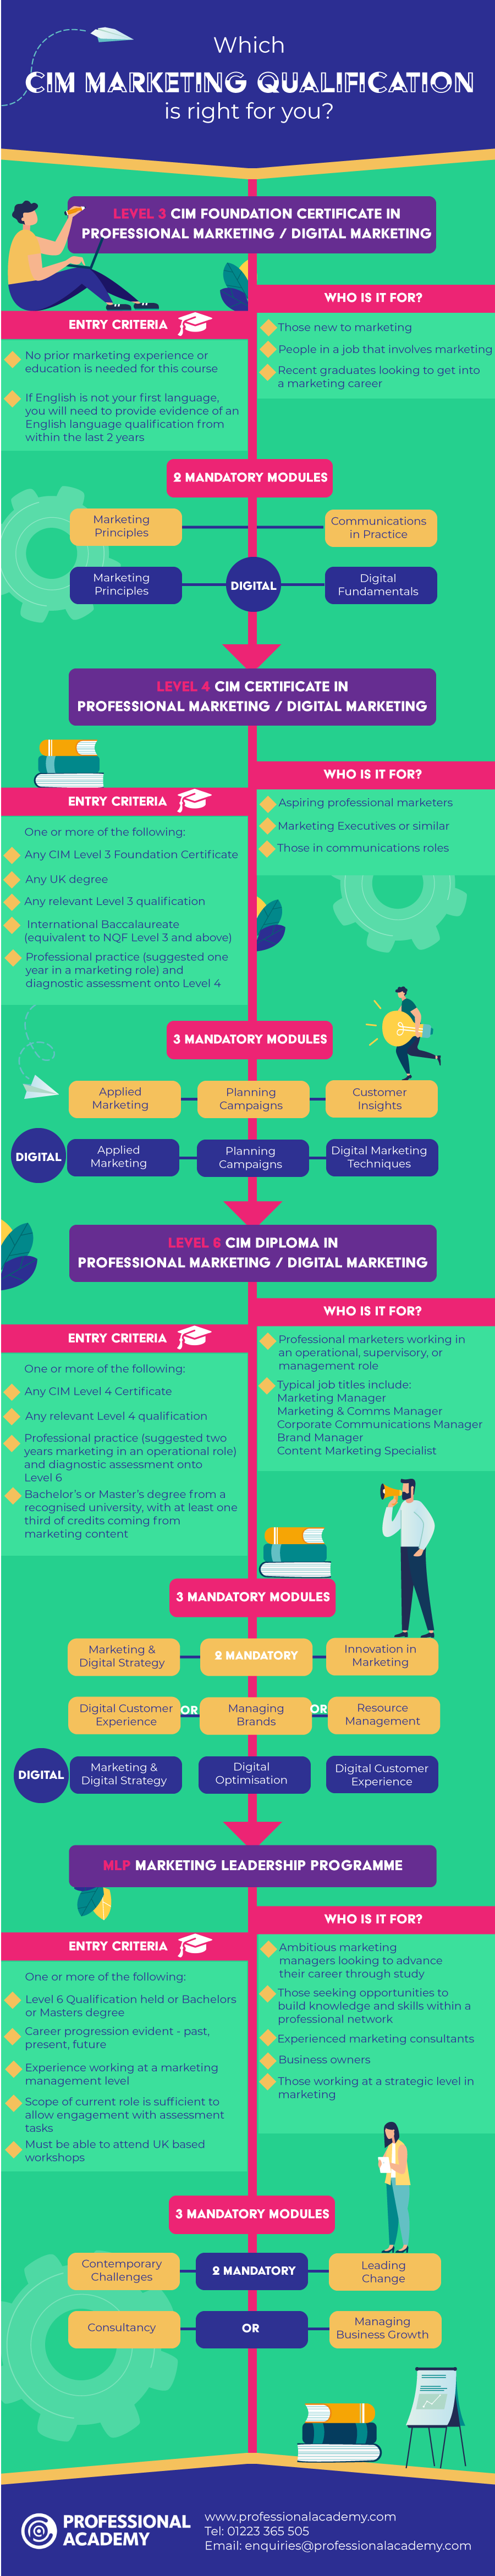 Choosing the right CIM marketing qualification infographic